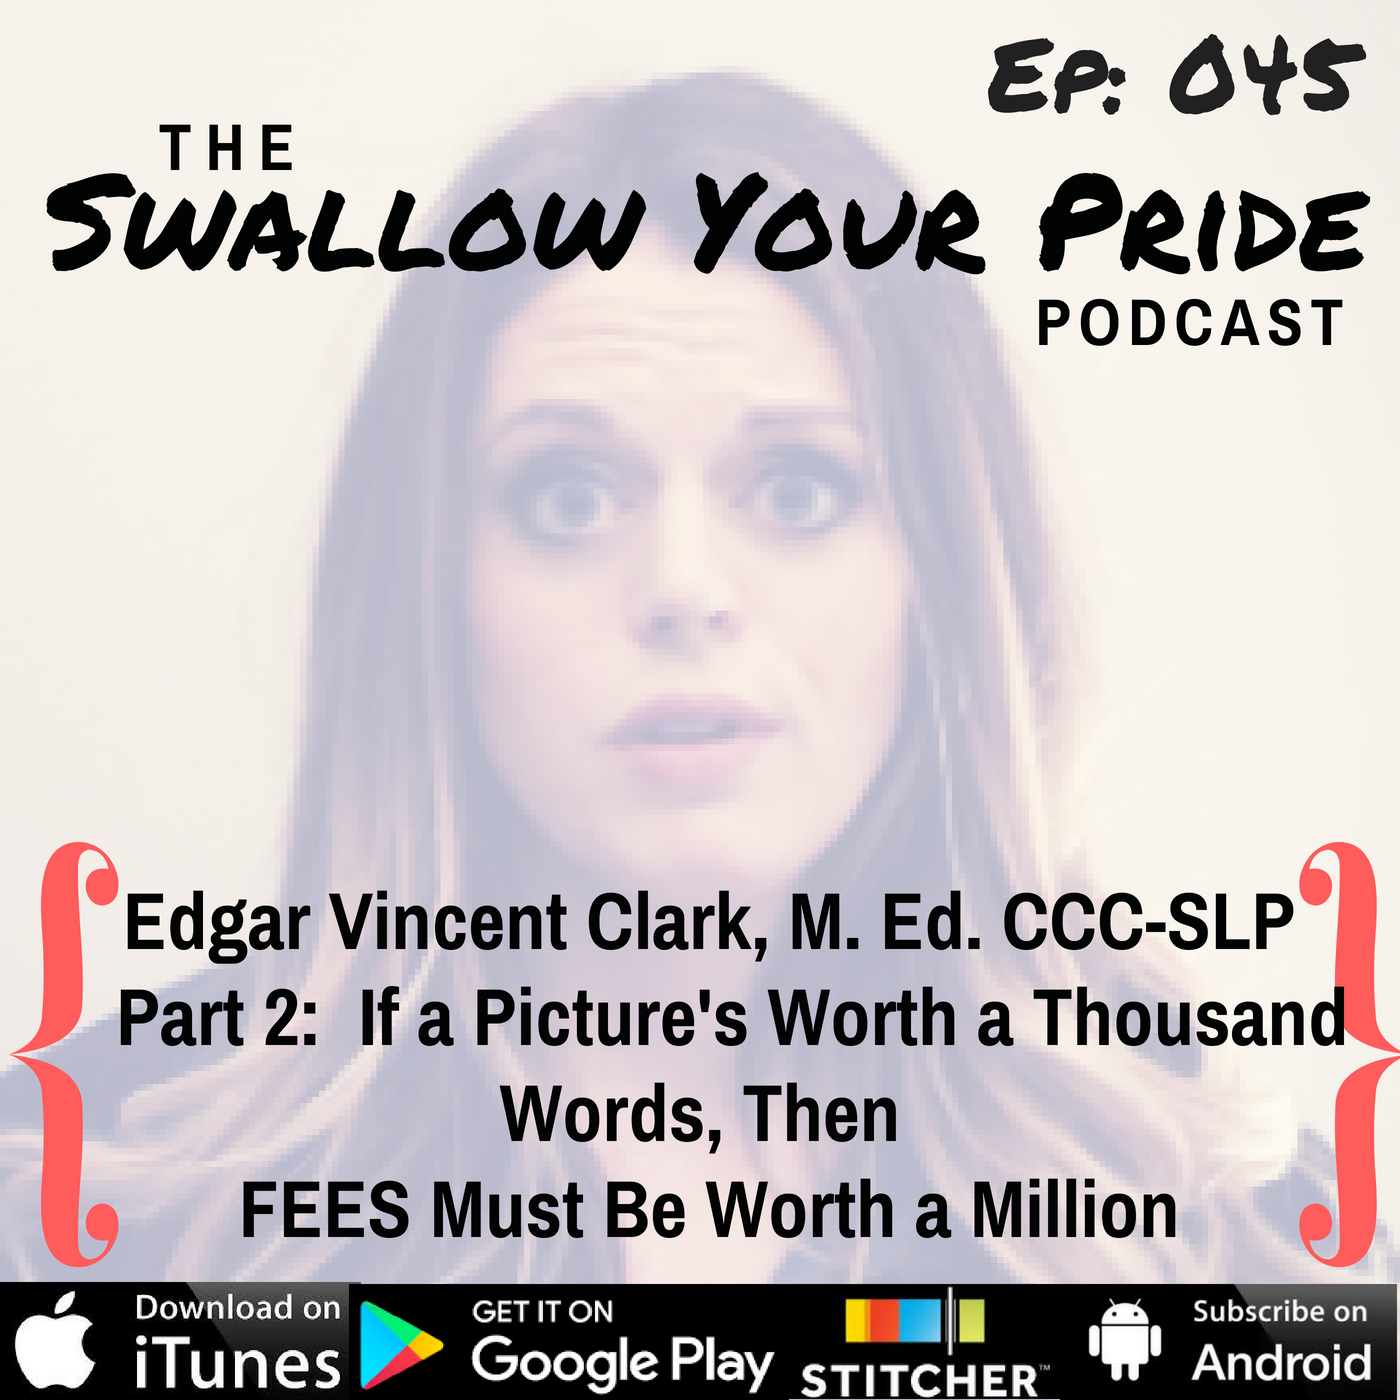 045 – Edgar Vincent Clark, M. Ed. CCC-SLP –  Part 2:  If a Picture's Worth a Thousand Words, Then  FEES Must Be Worth a Million